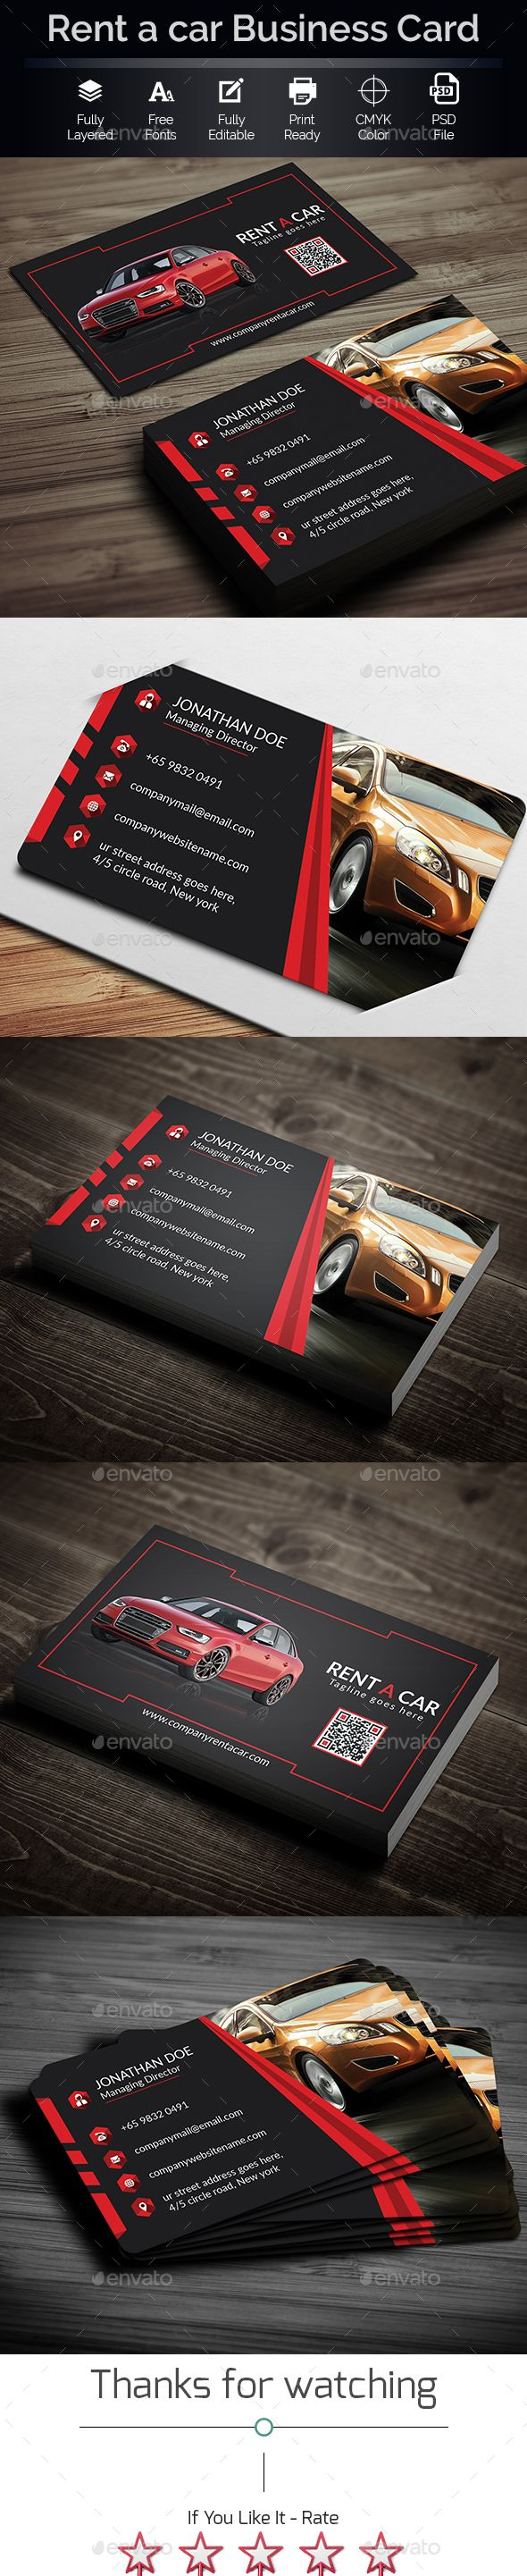 Rent A Car Business Card | Business cards, Renting and Business